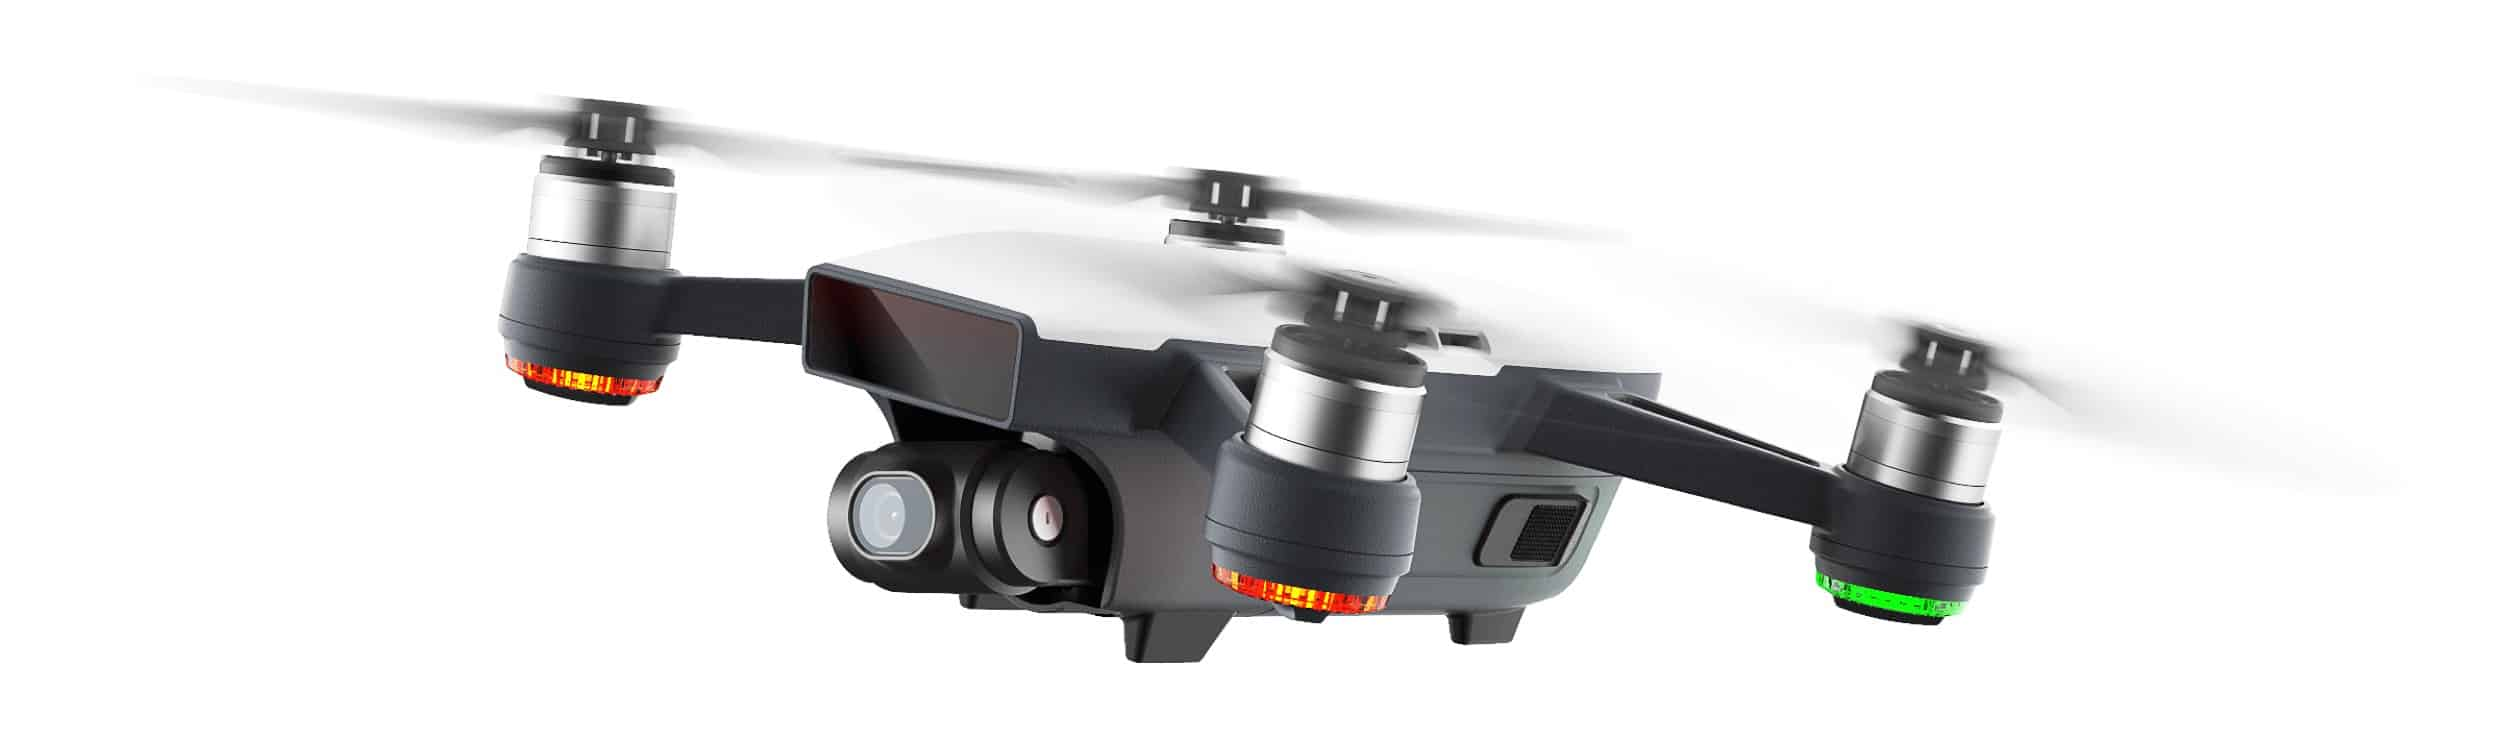 dji spark drone special event